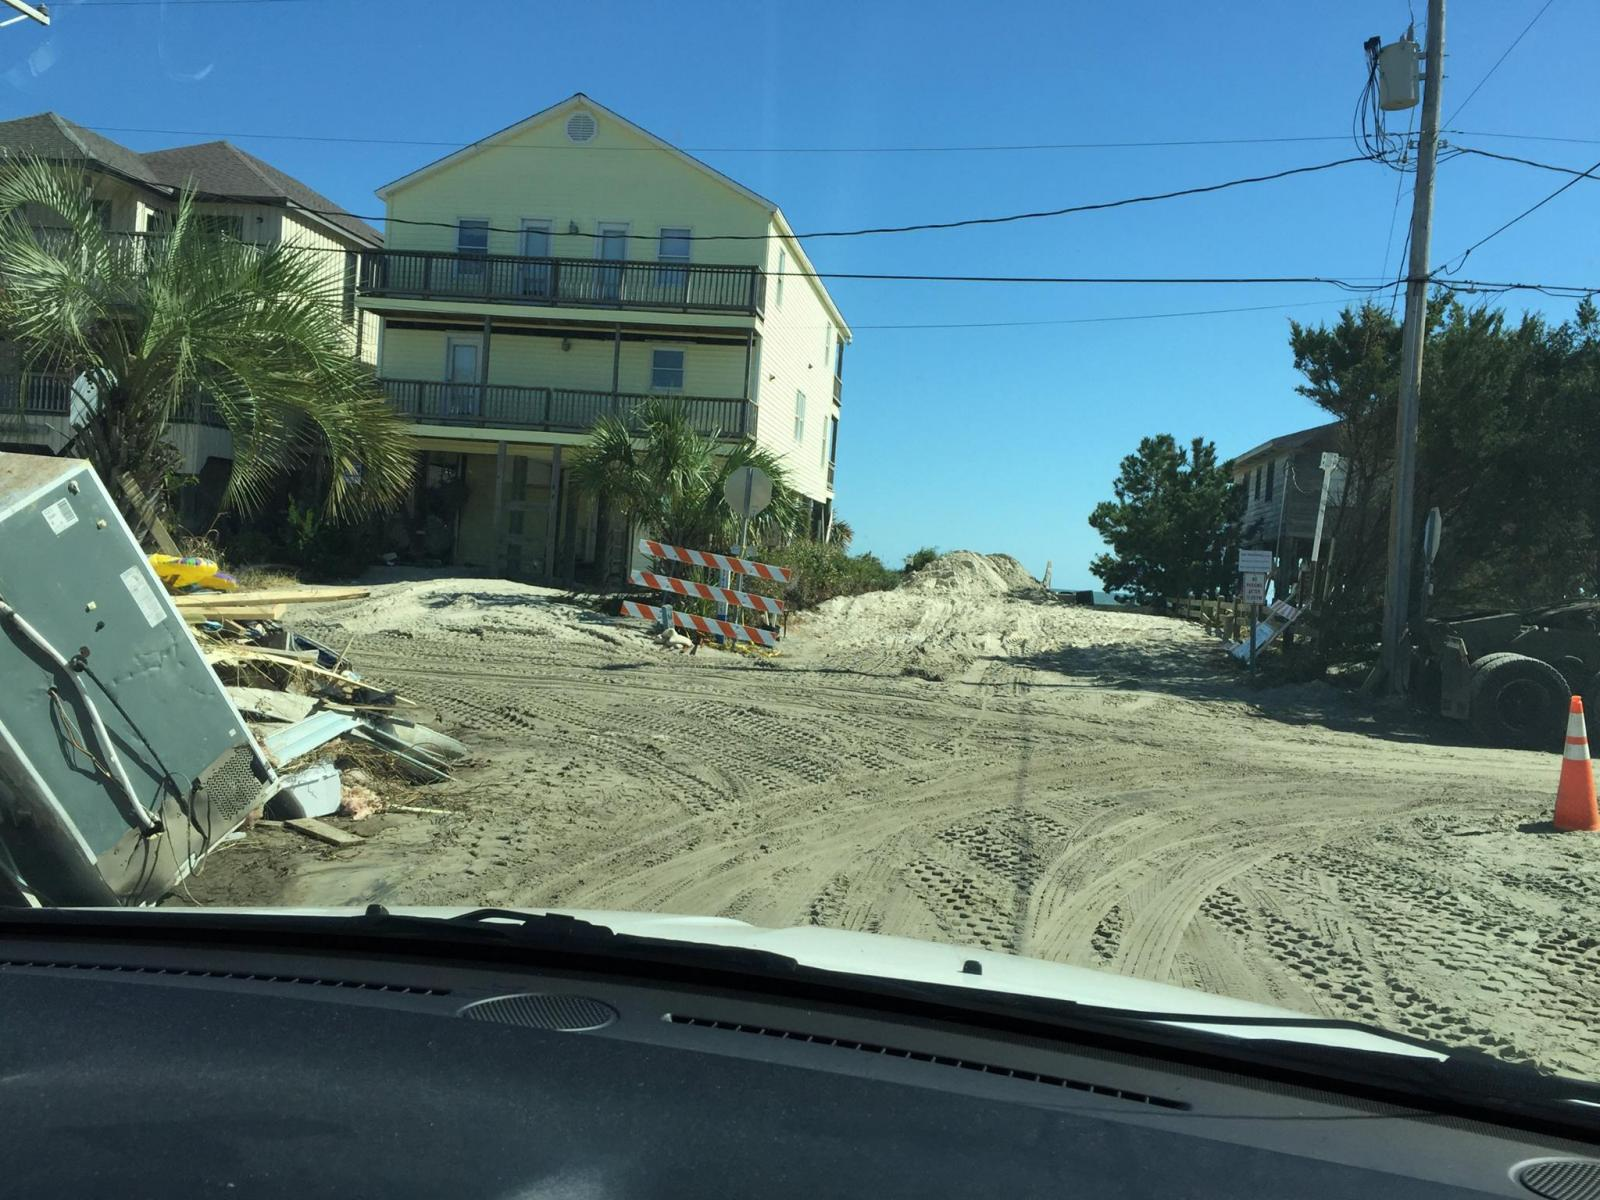 Sand and debris from Hurricane Matthew covers Pritchard Street in Pawley's Island, SC on October 13, 2016